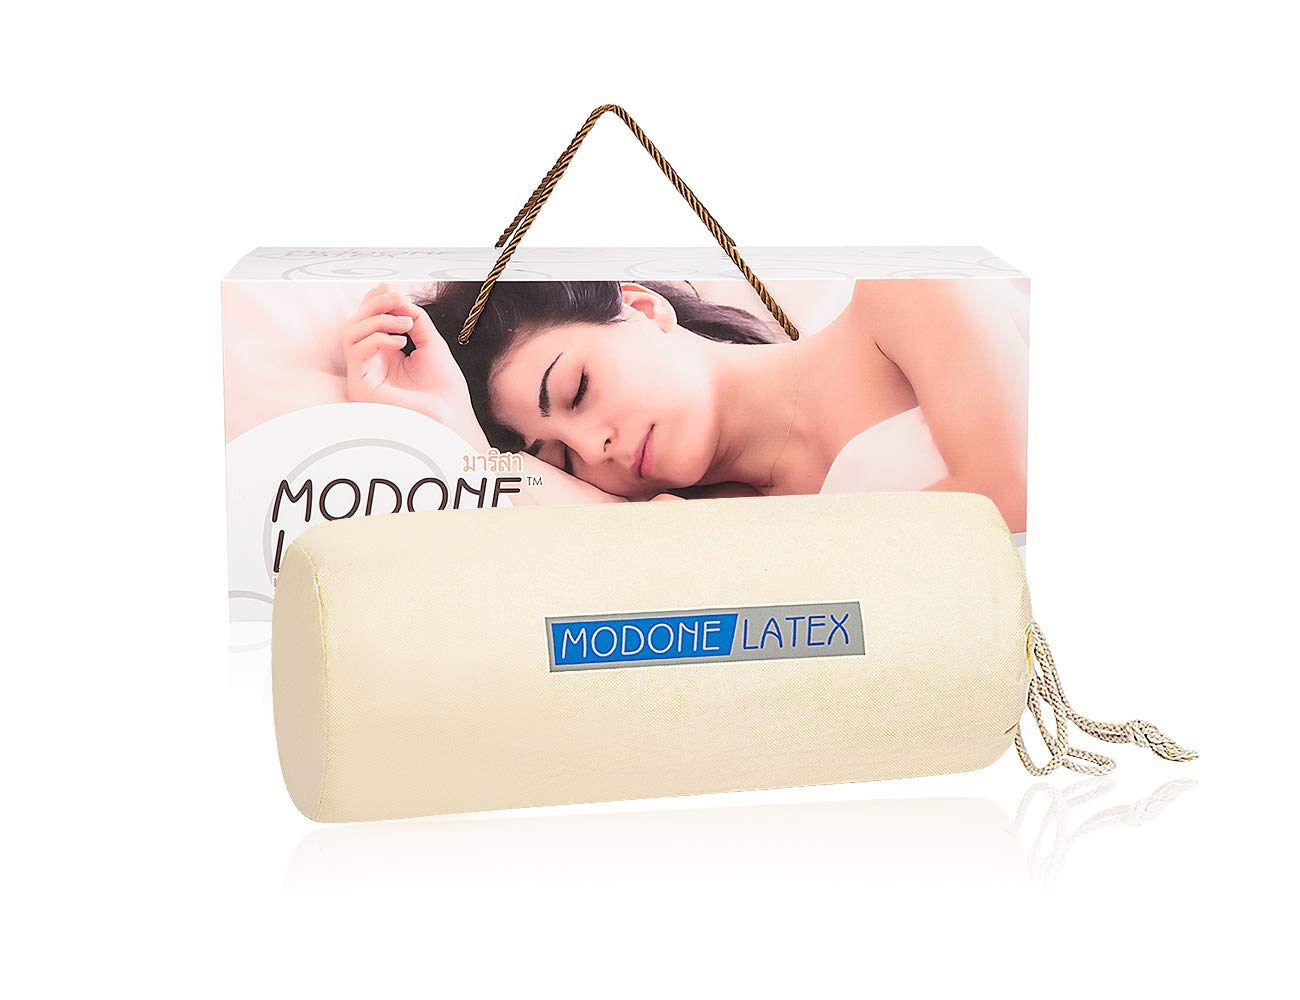 c4c4362c5aa Amazon.com  MODONE Natural Foam Talalay Latex Bed Pillows for Sleeping  Memory Foam with Beauty Hypoallergenic Pillows  Health   Personal Care